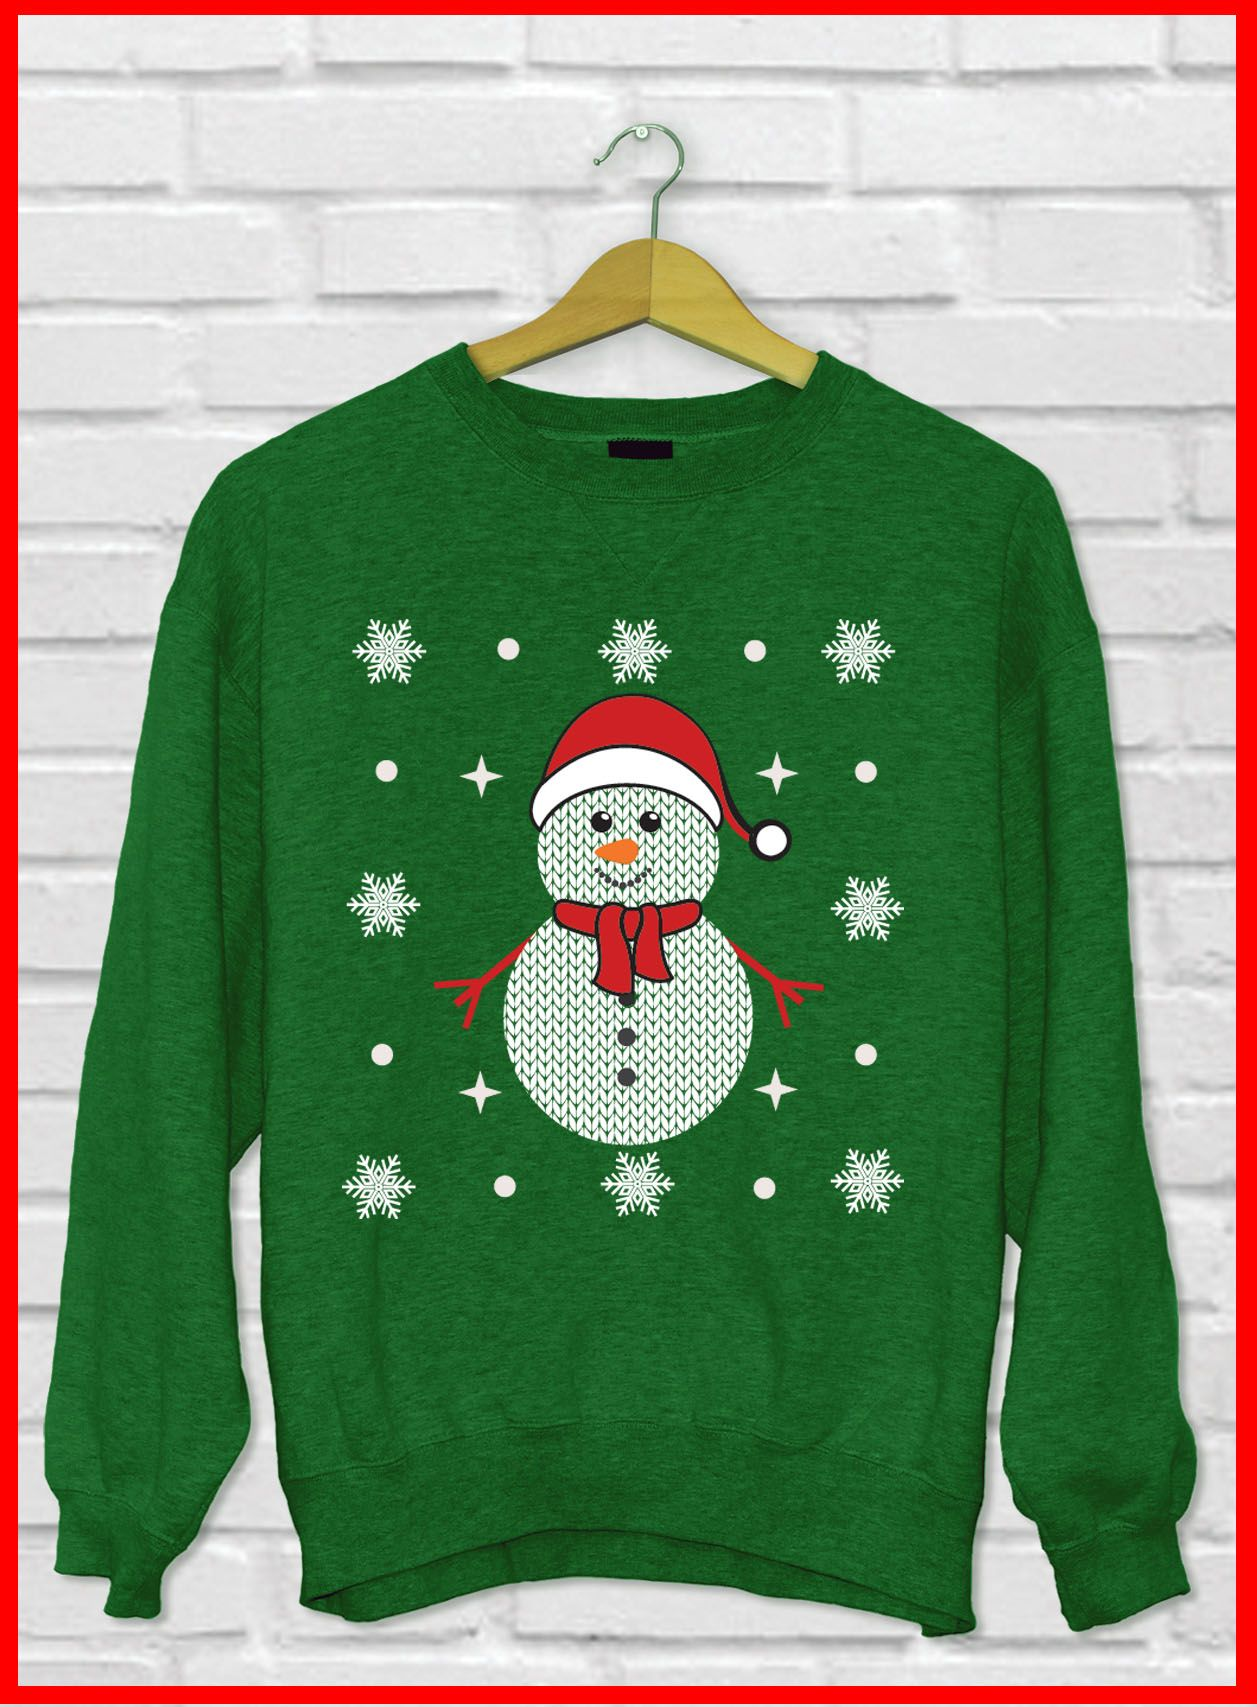 Christmas Awesome sweater design pictures